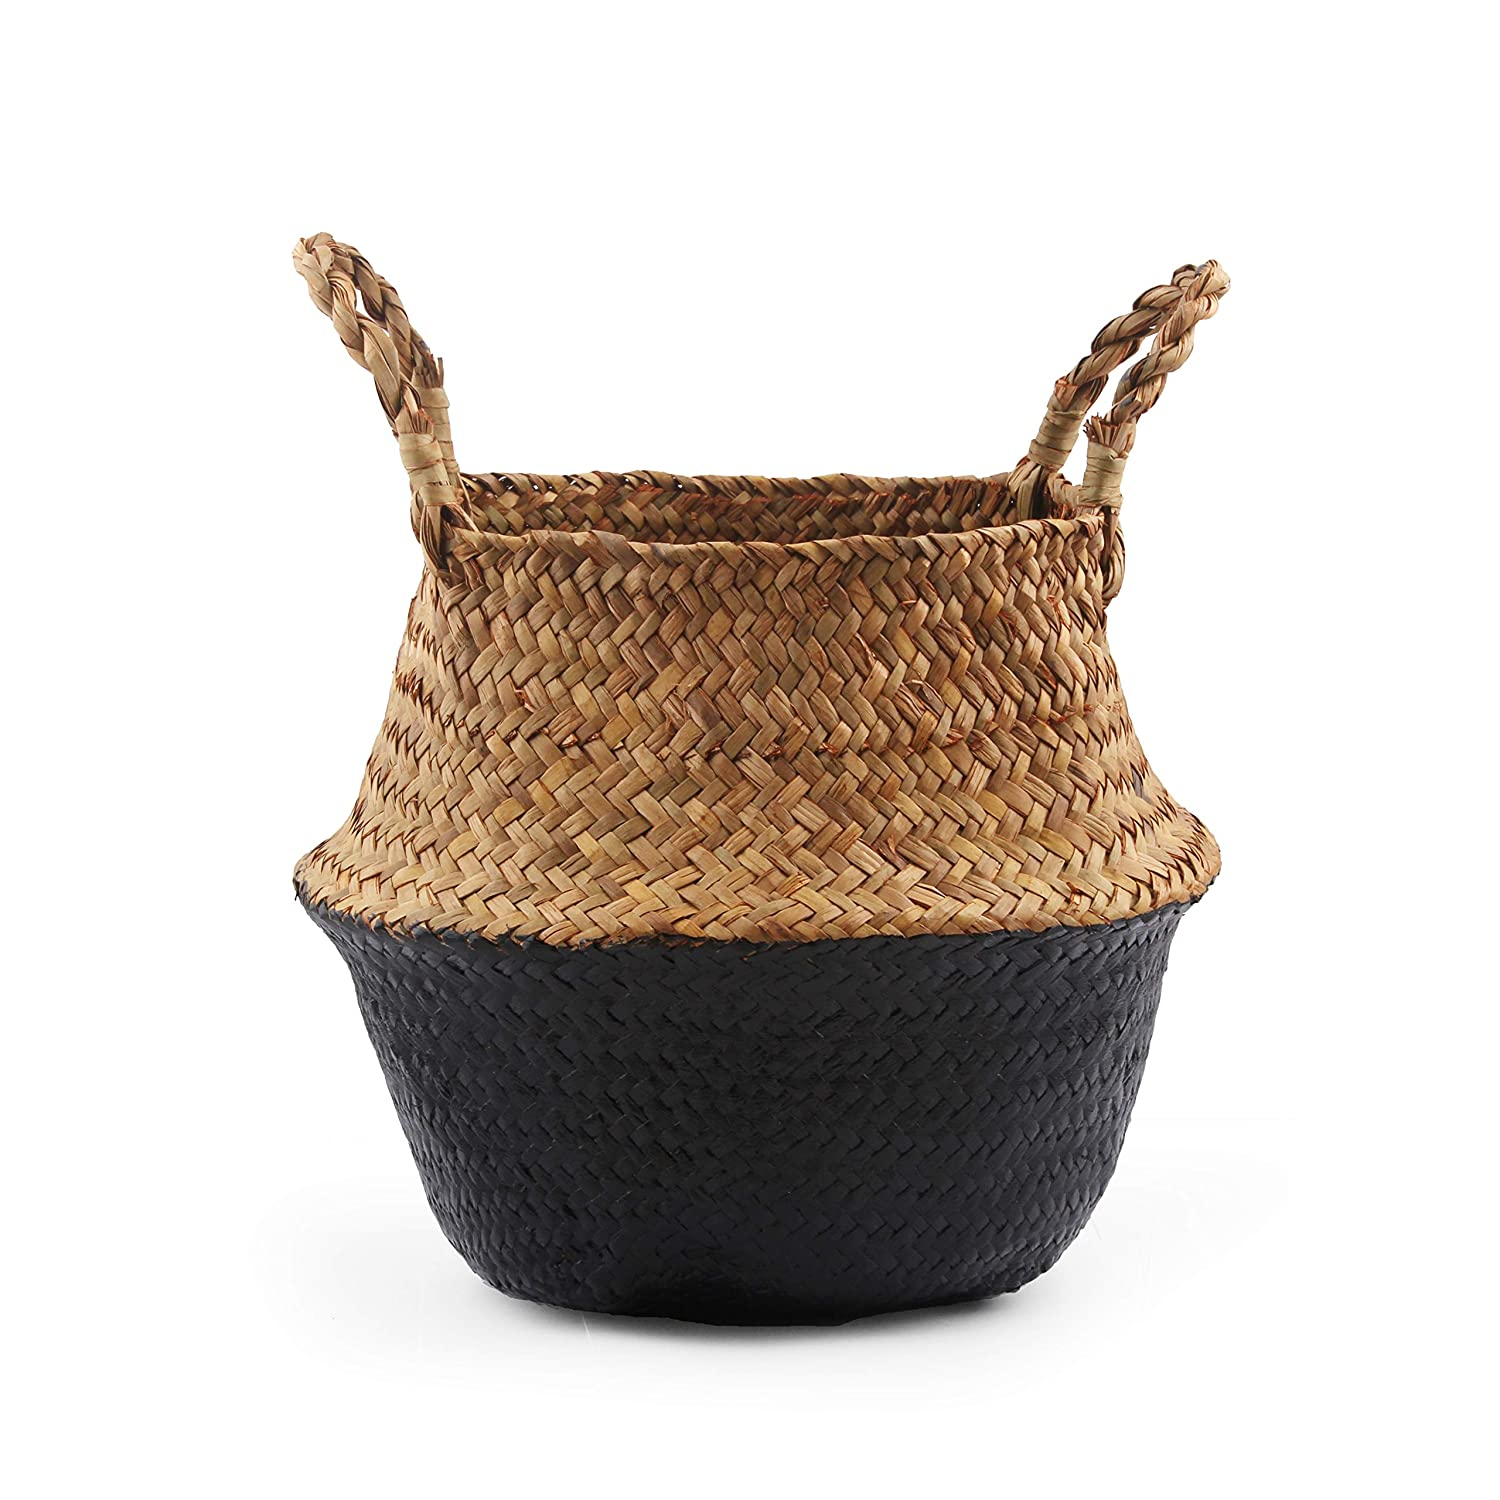 BlueMake Woven Seagrass Belly Basket for Storage, Laundry, Picnic, Plant Pot Cover, and Grocery and Toy Storage Large, Black